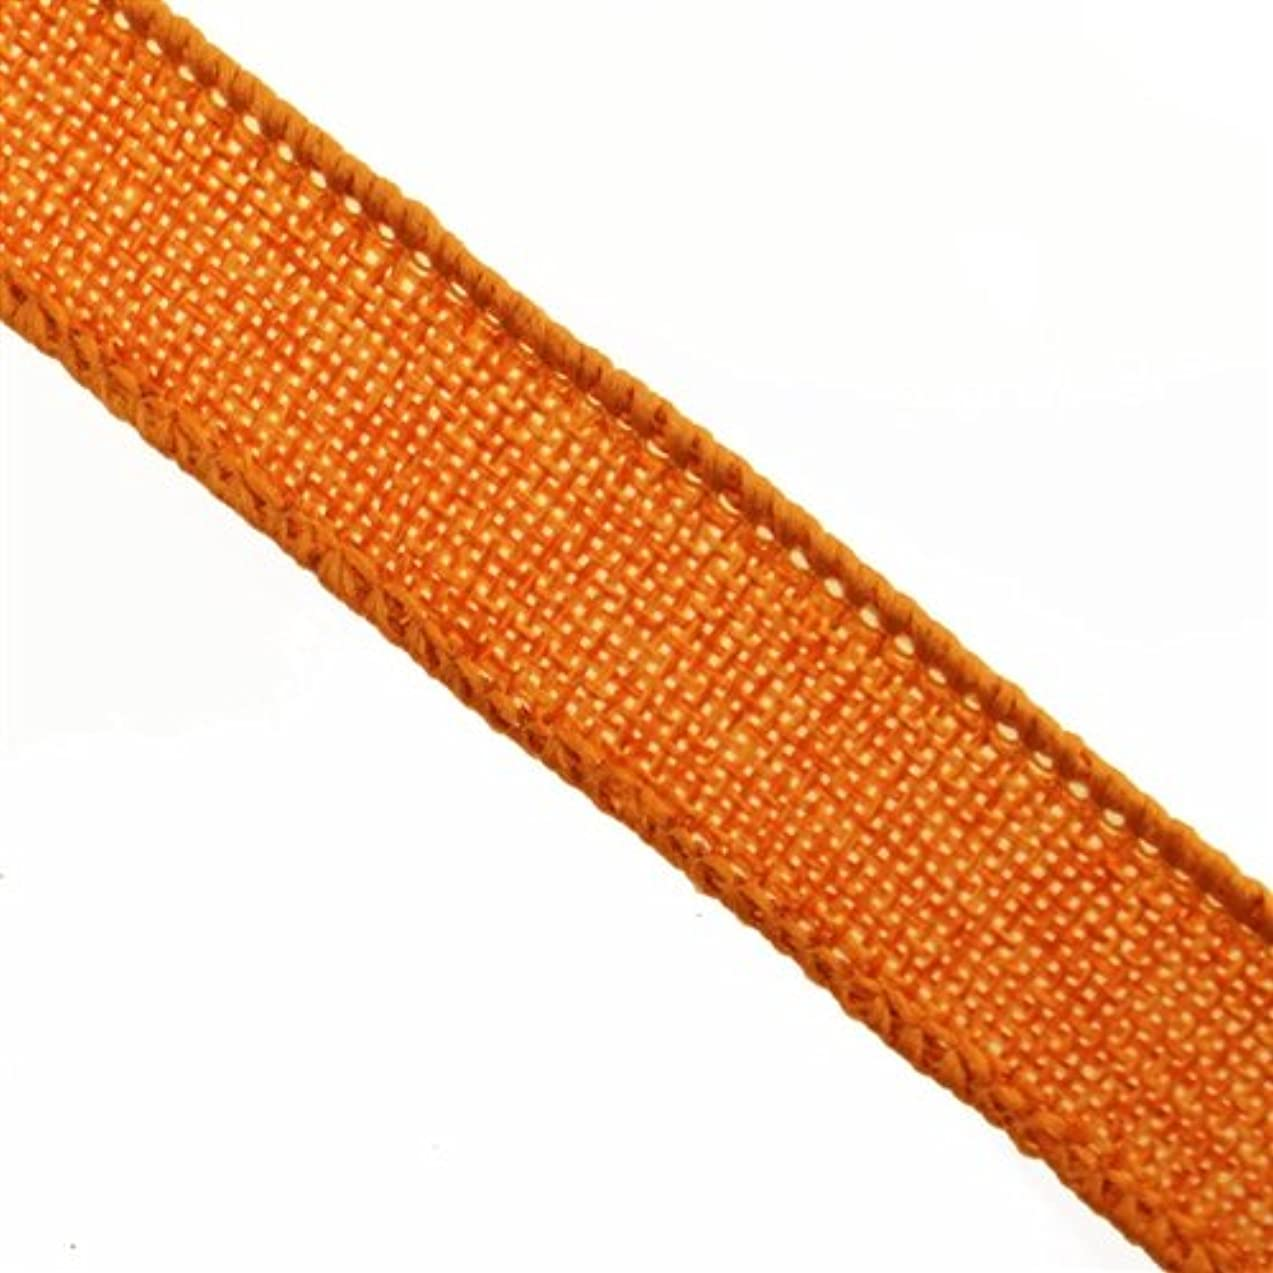 Firefly Imports Homeford Faux Burlap Jute Wired Ribbon, Orange, 7/8-Inch by 10-Yard